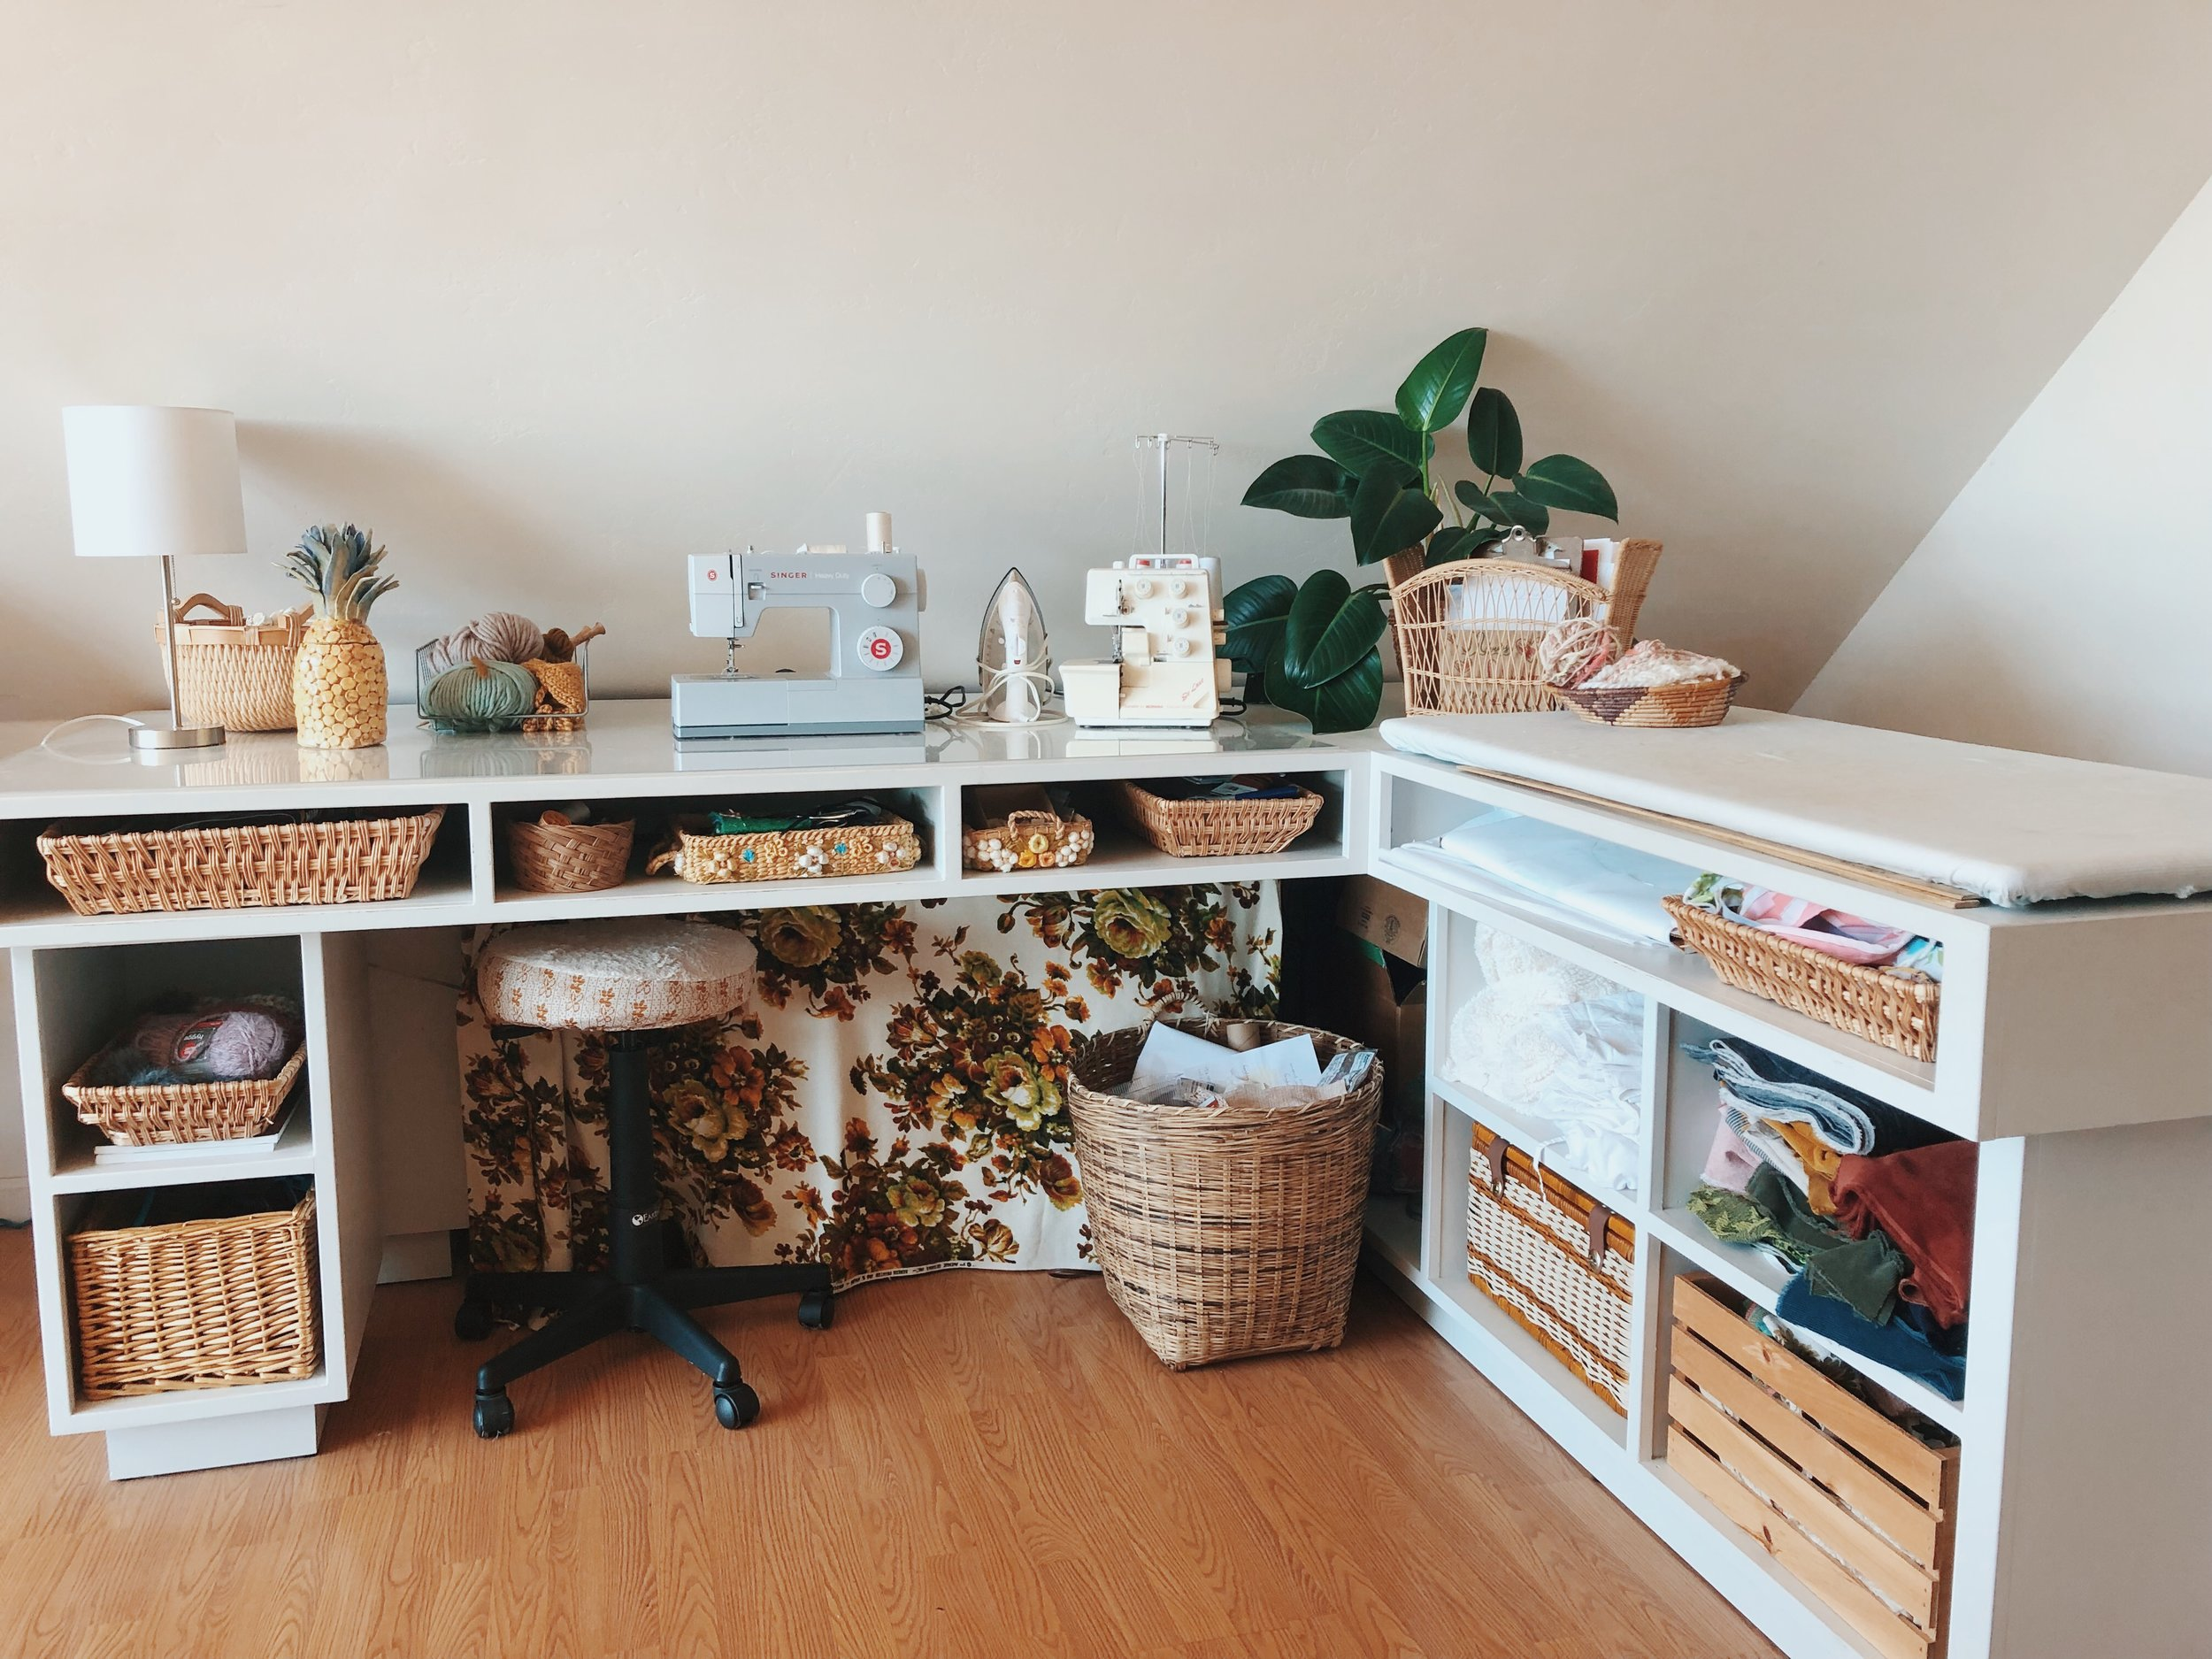 My husband built this custom sewing desk for me a few years ago. It fits all my fabric and supplies and also sits in the corner of my living space. Blue Corduroy studio tour.